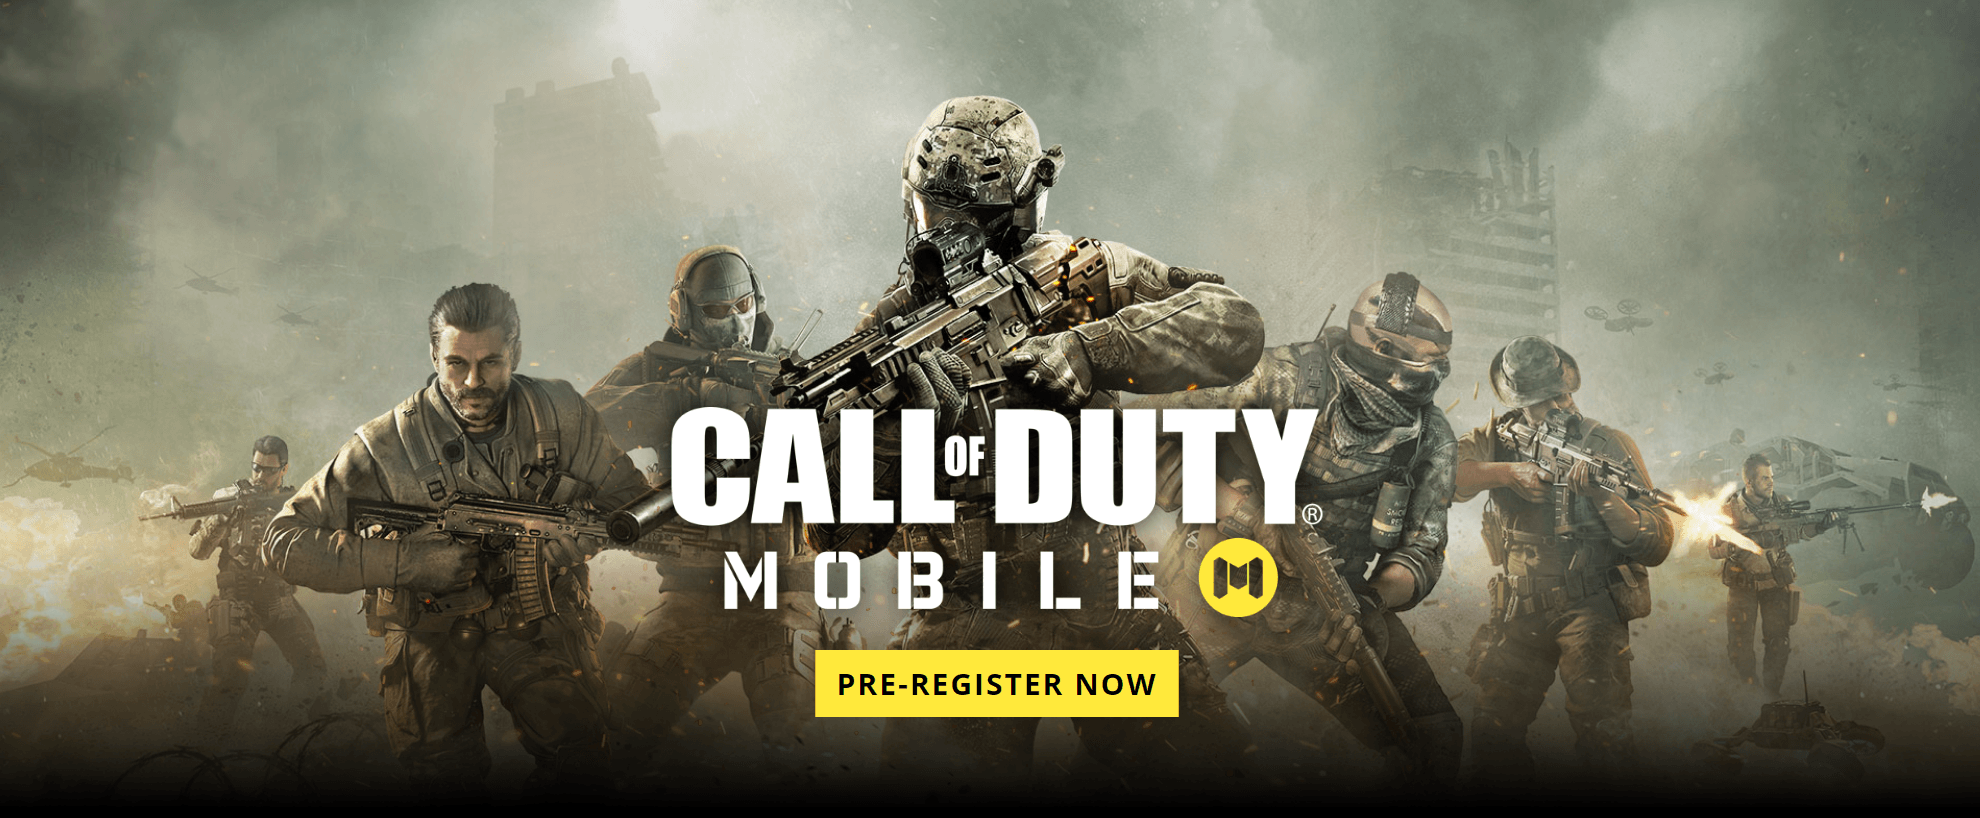 Zapowiedziano Call of Duty: Mobile - grę free to play na Androida i iOS 25